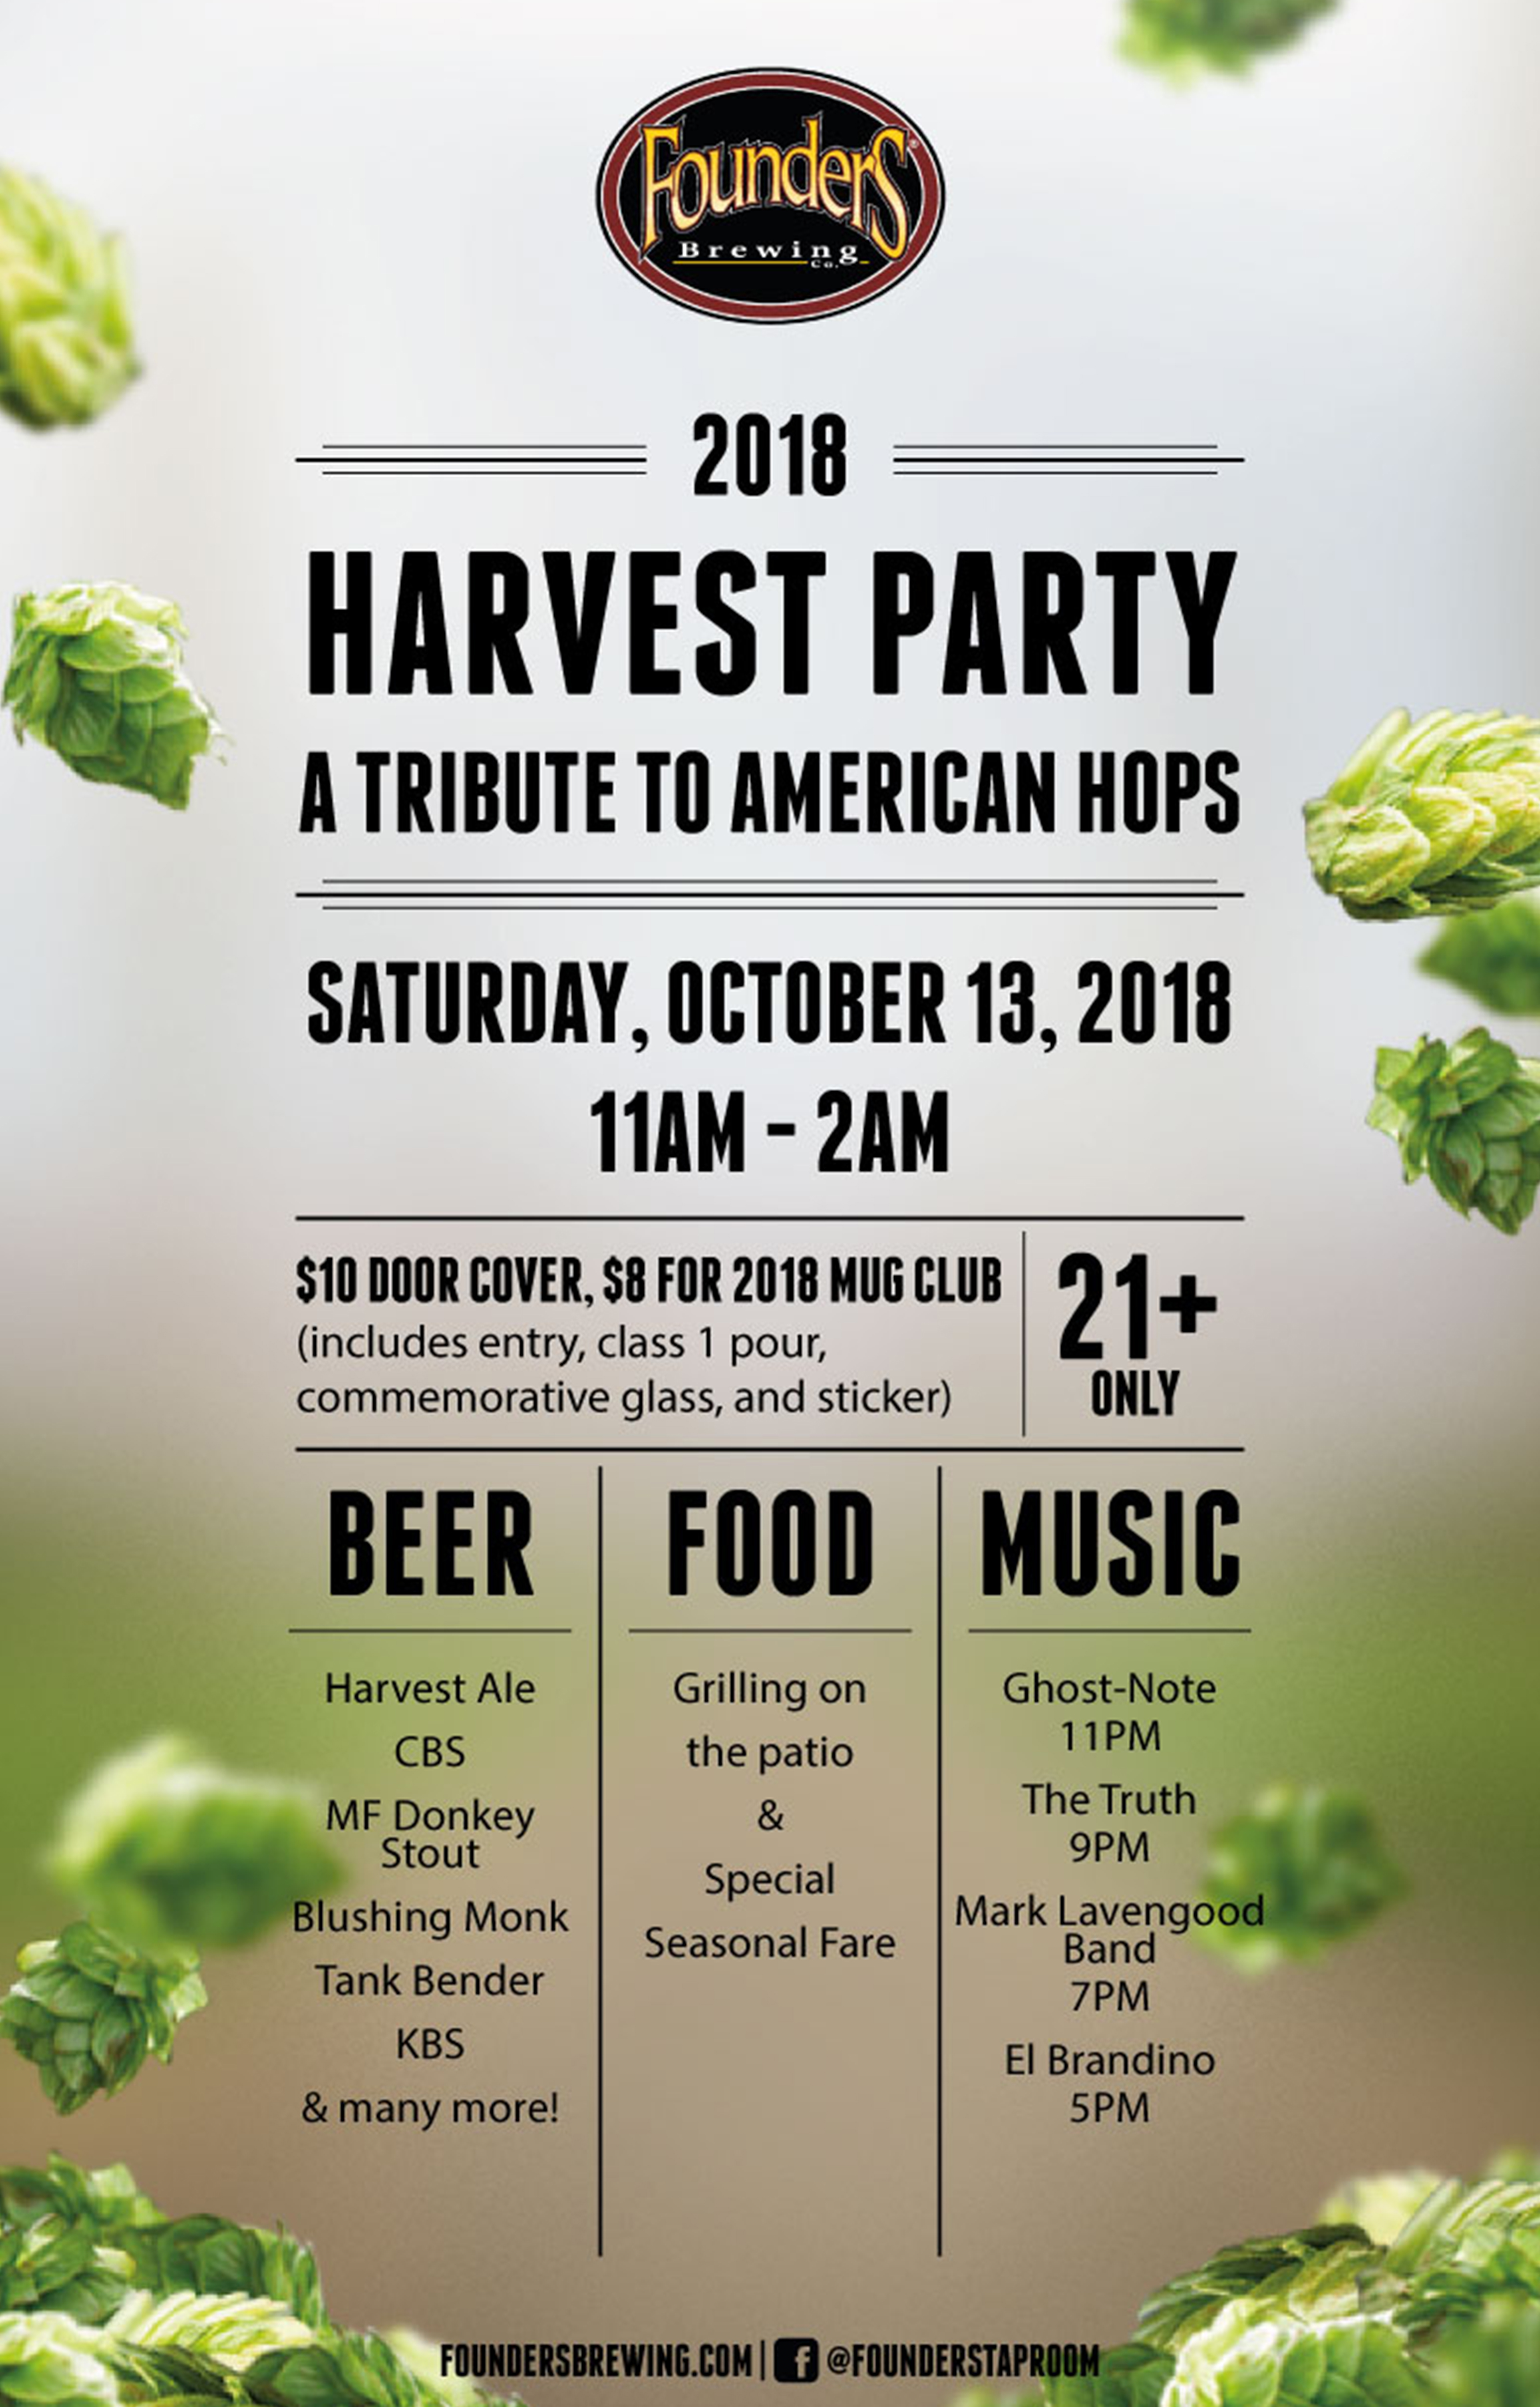 Founders 2018 Harvest Party A Tribute to American Hops event poster